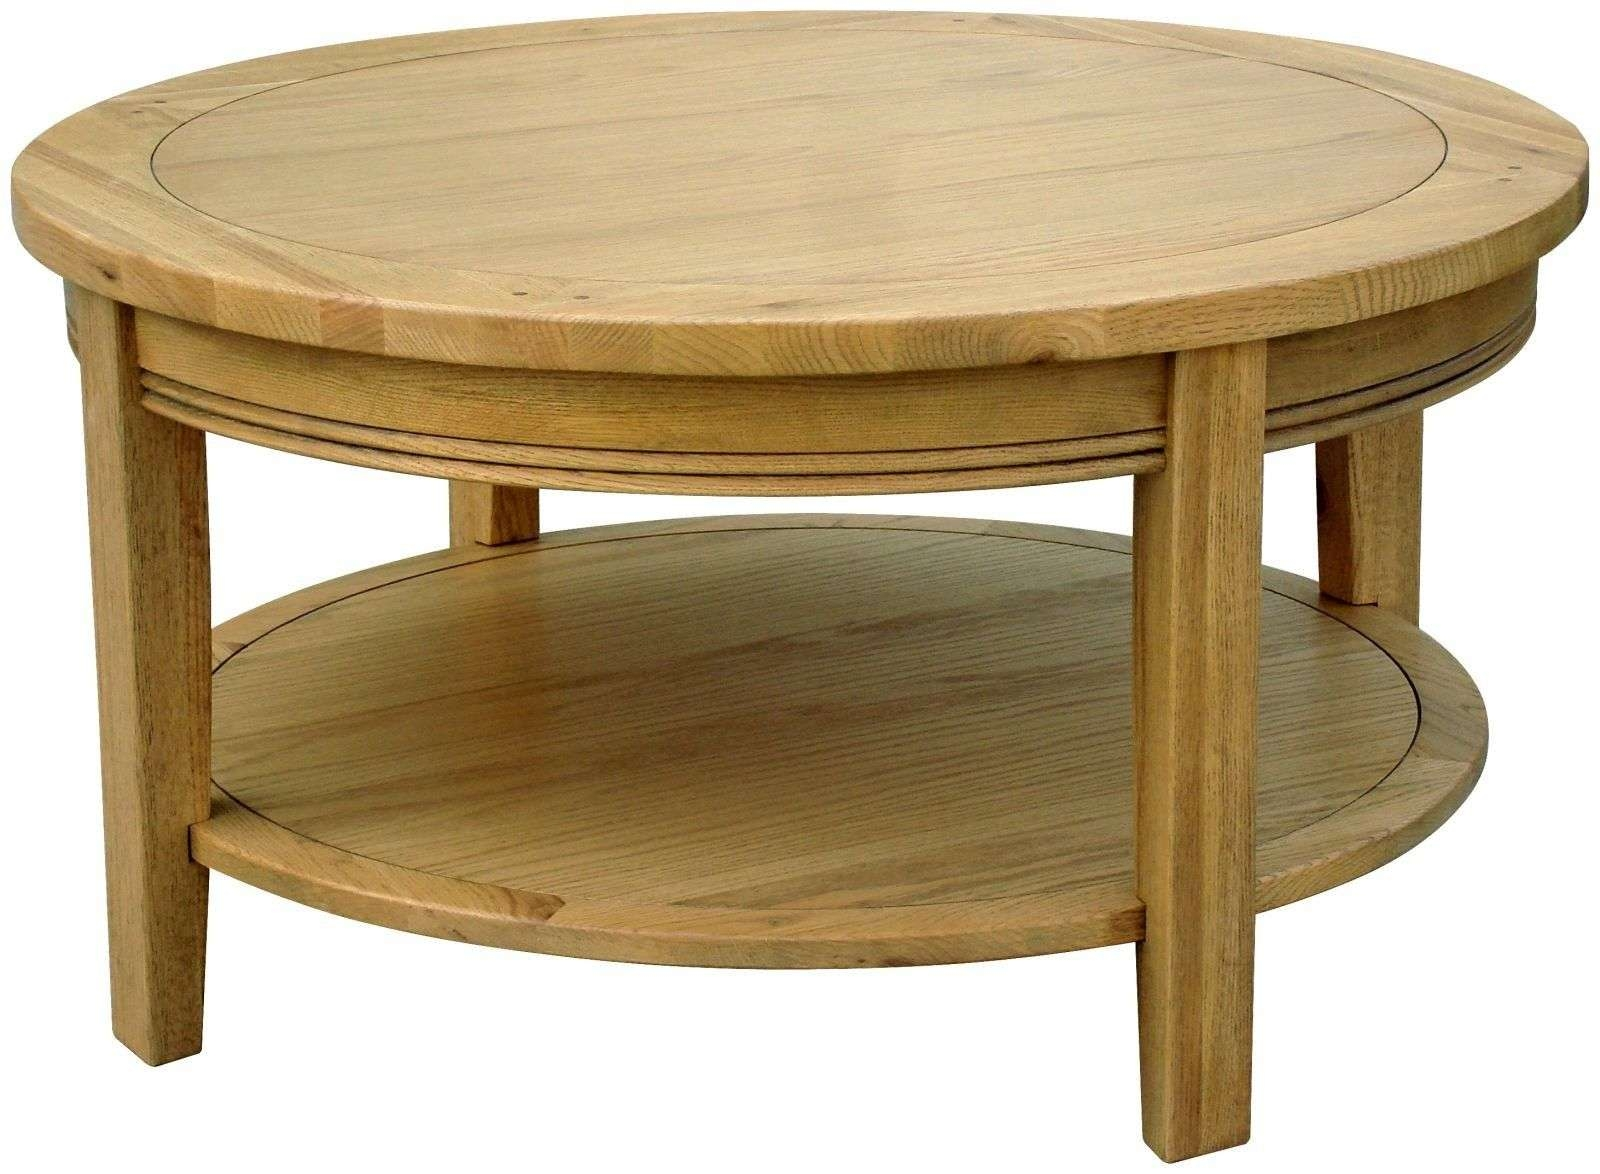 2018 Round Oak Coffee Tables Intended For Interior (View 1 of 20)